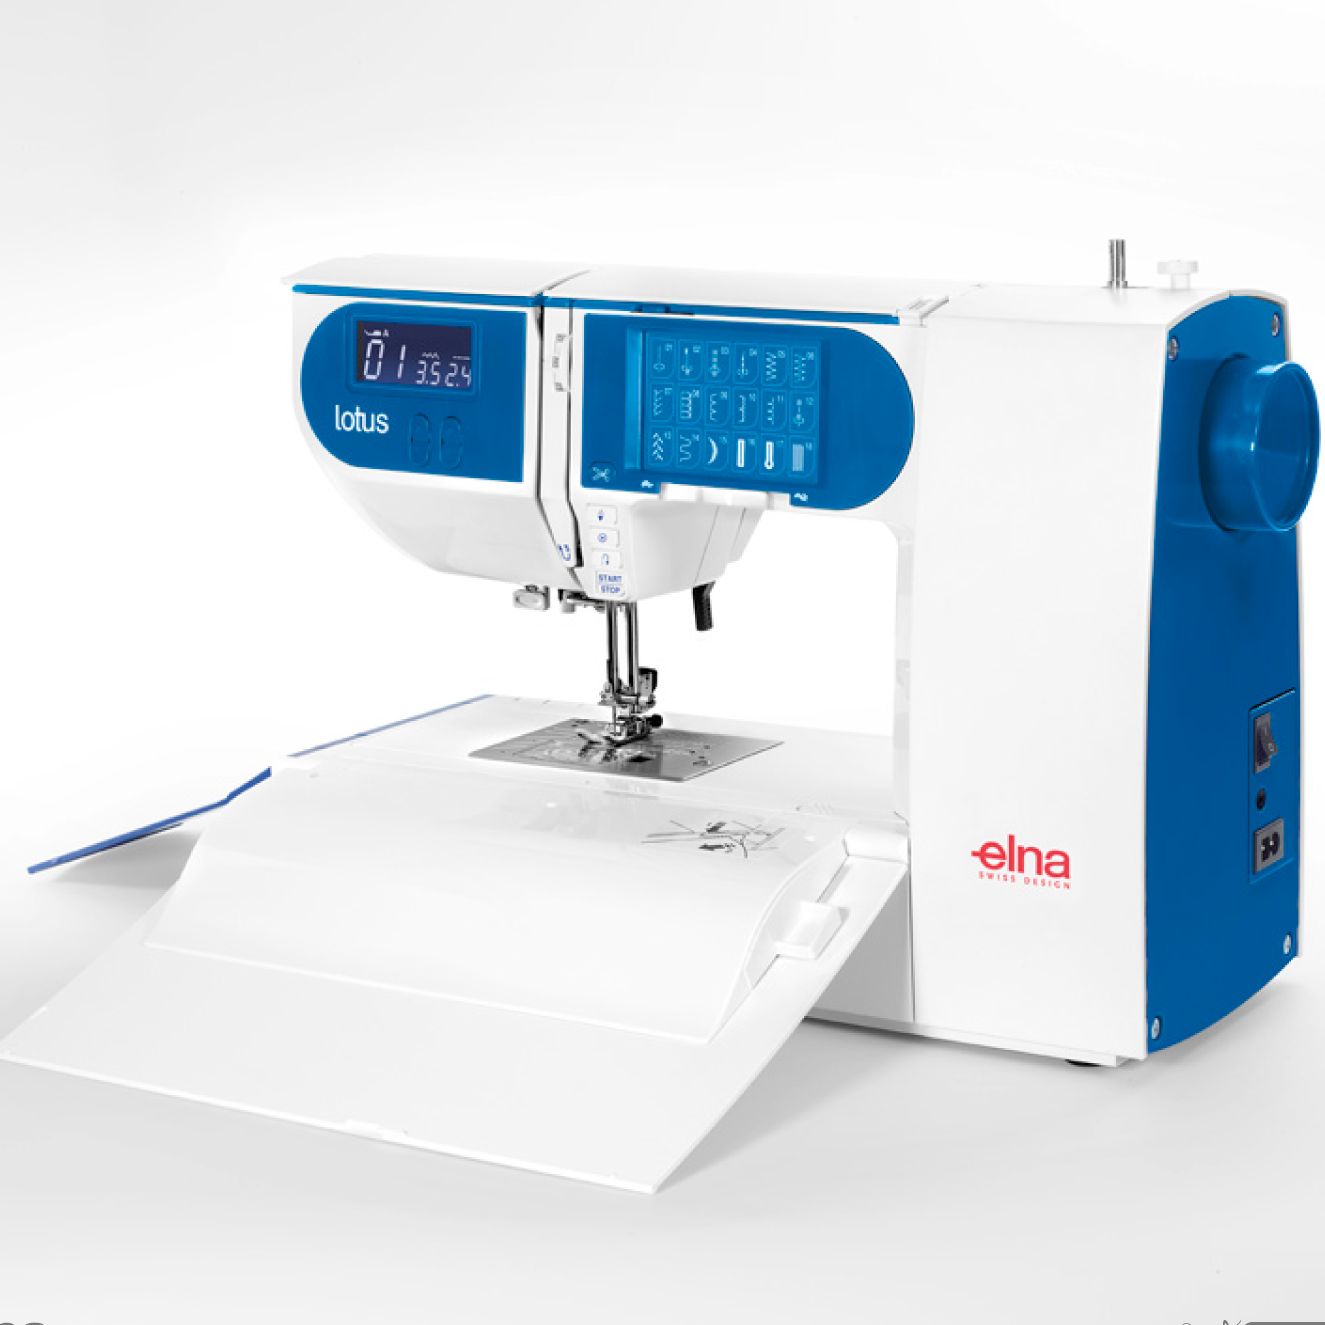 Elna Lotus Sewing Machine